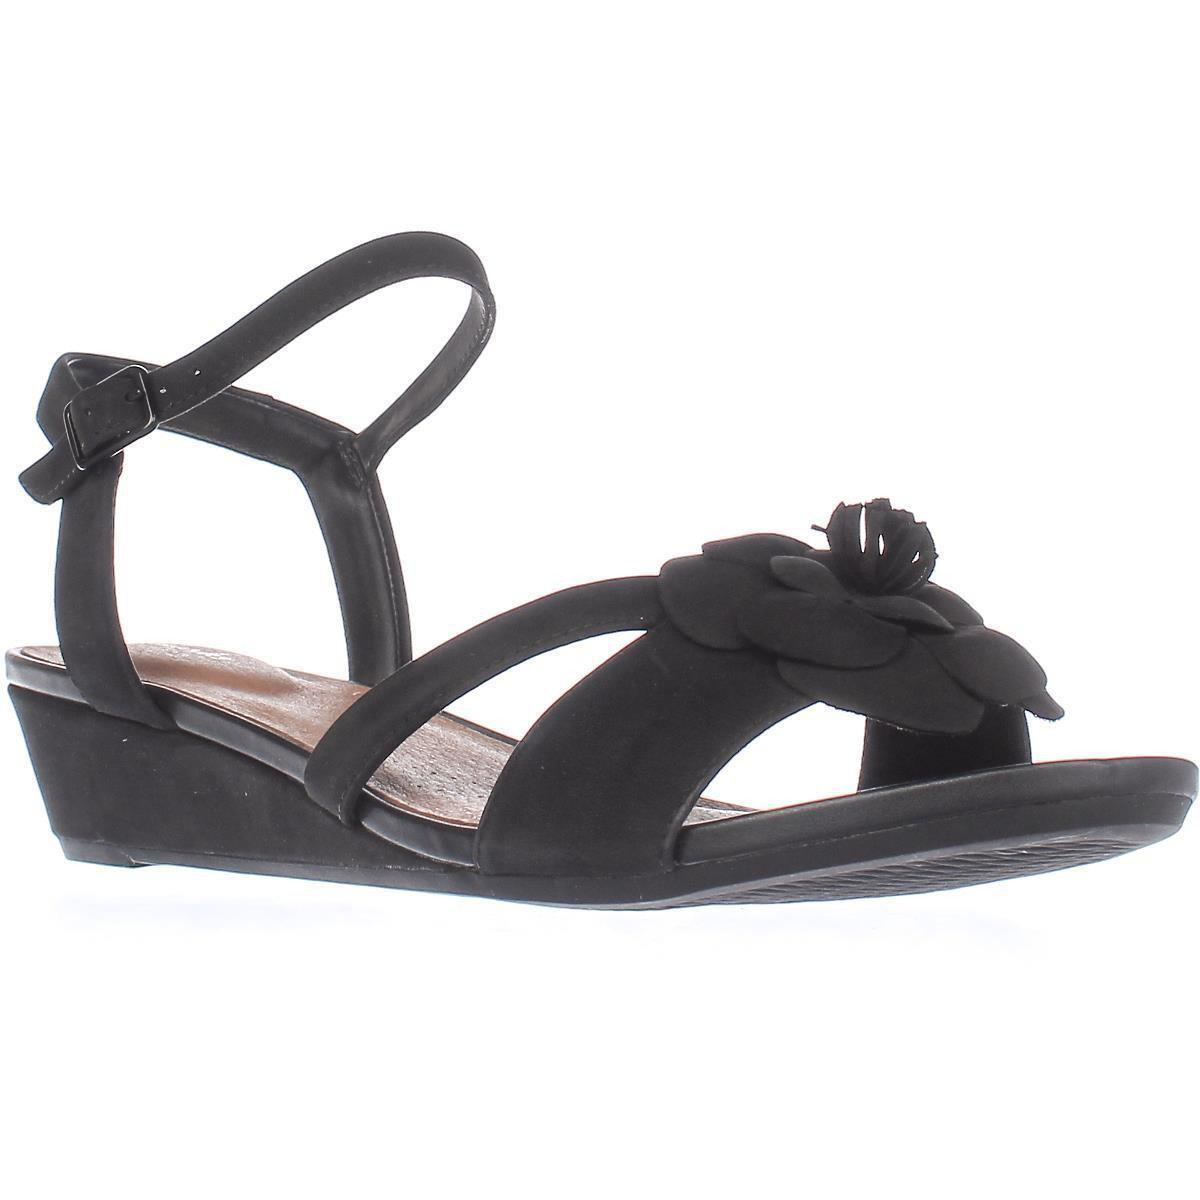 8f2f9dc1db9f Clarks Parram Stella Low-wedge Comfort Sandals in Black - Lyst